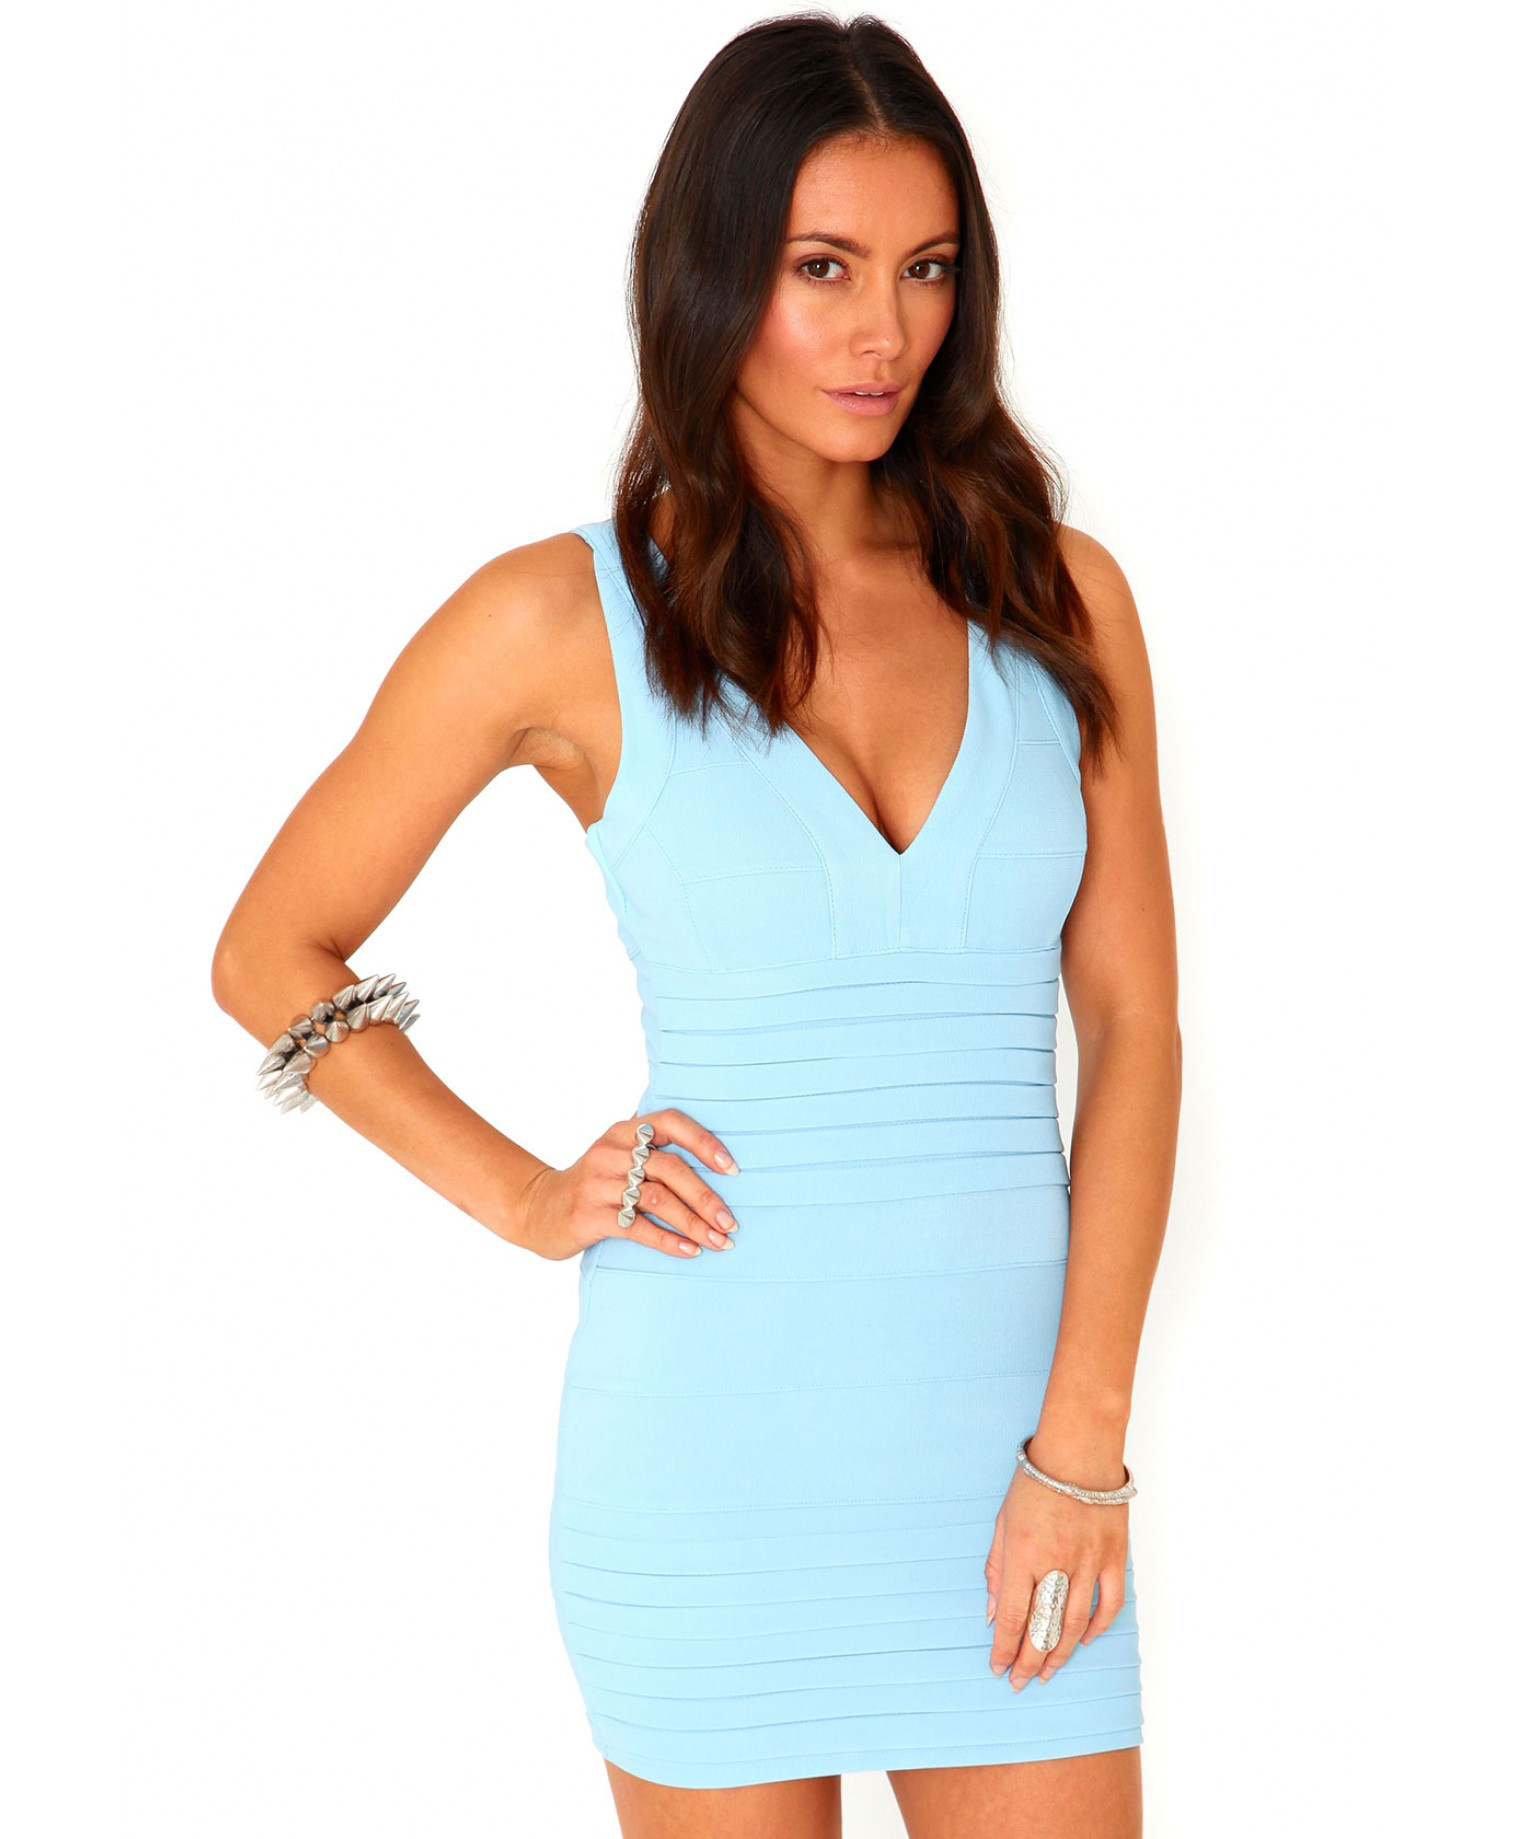 Missguided Leena Bandage Bodycon Dress In Baby Blue in Blue | Lyst